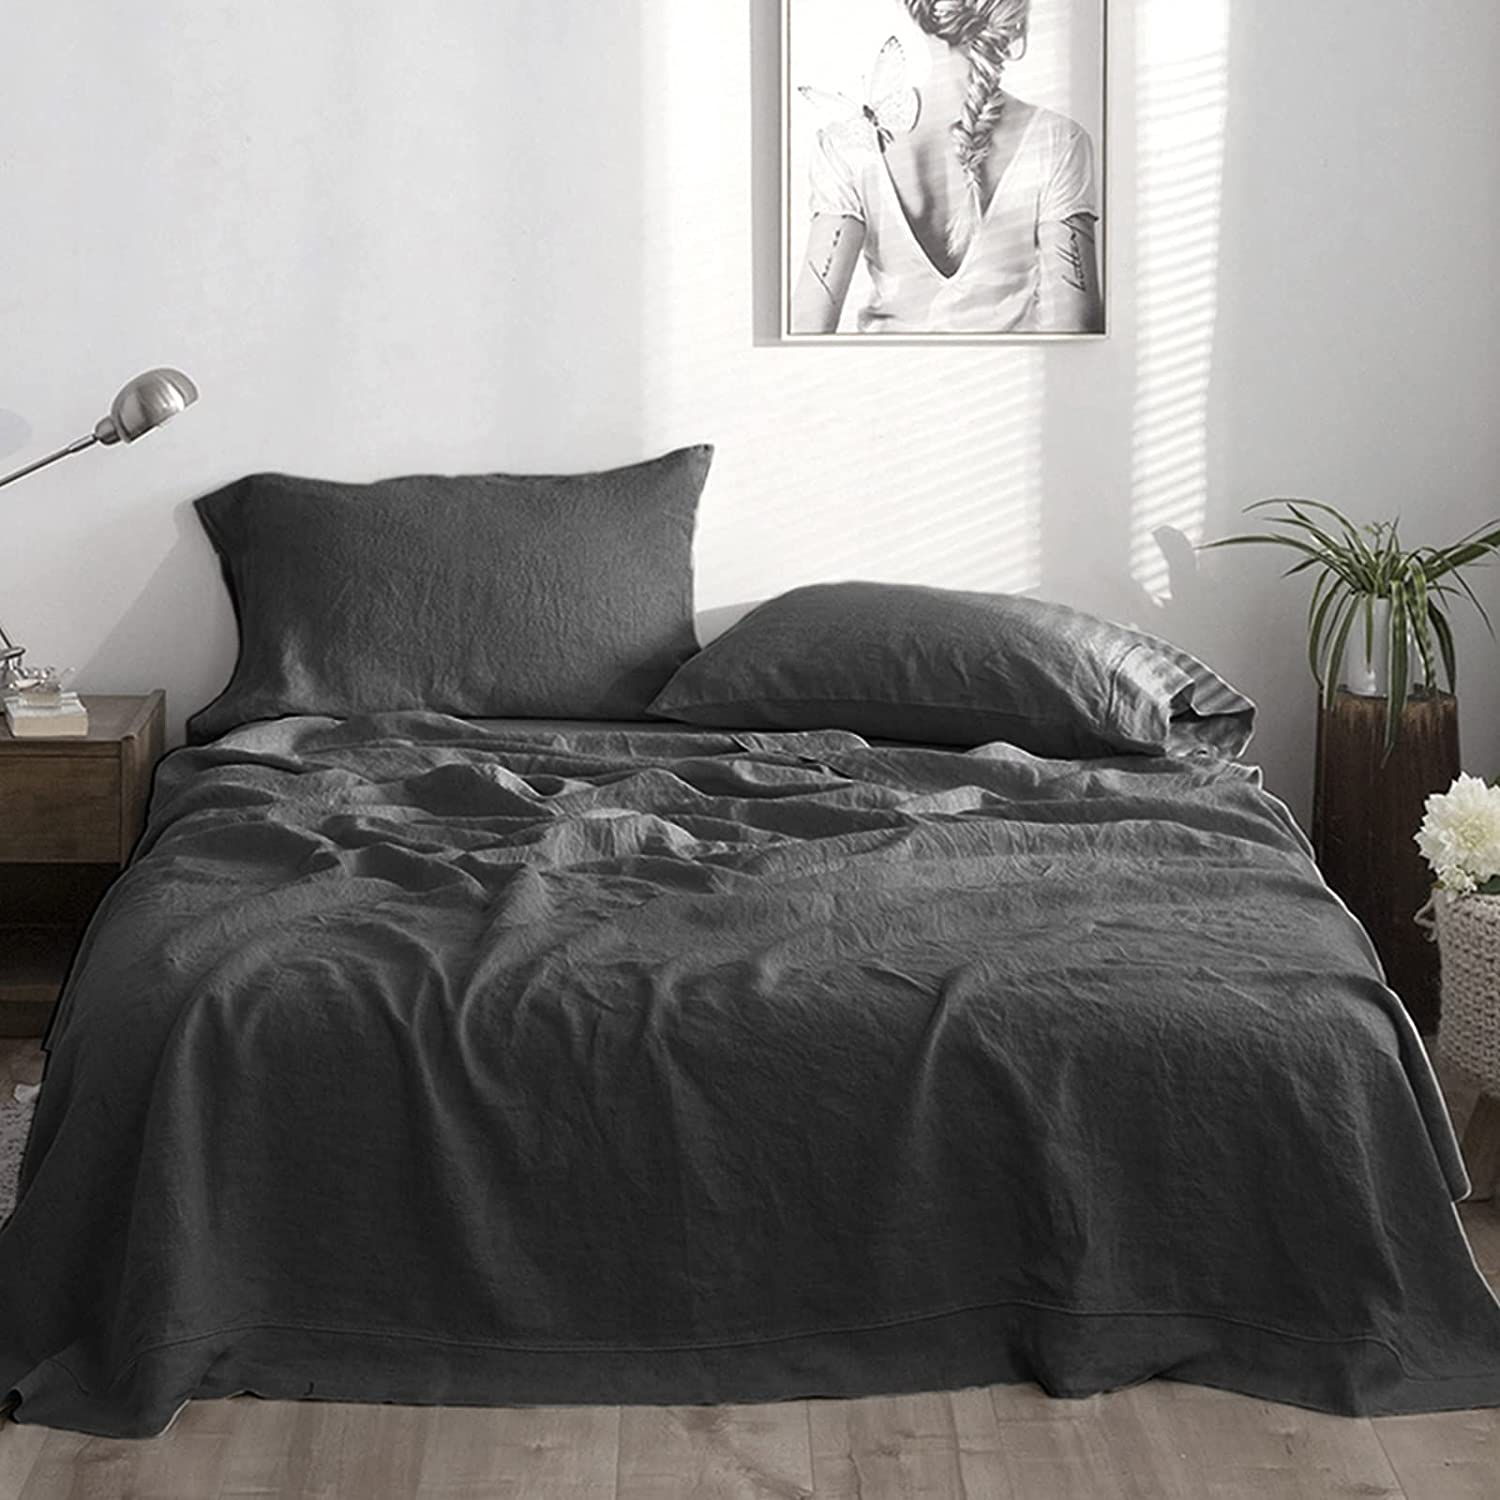 Simple&Opulence 100% Linen Sheet Set with Embroidery Washed - 4 Pieces (1 Flat Sheet & 1 Fitted Sheet & 2 Pillowcases) Natural Flax Soft Bedding Breathable Farmhouse - Dark Grey, King Size : Everything Else